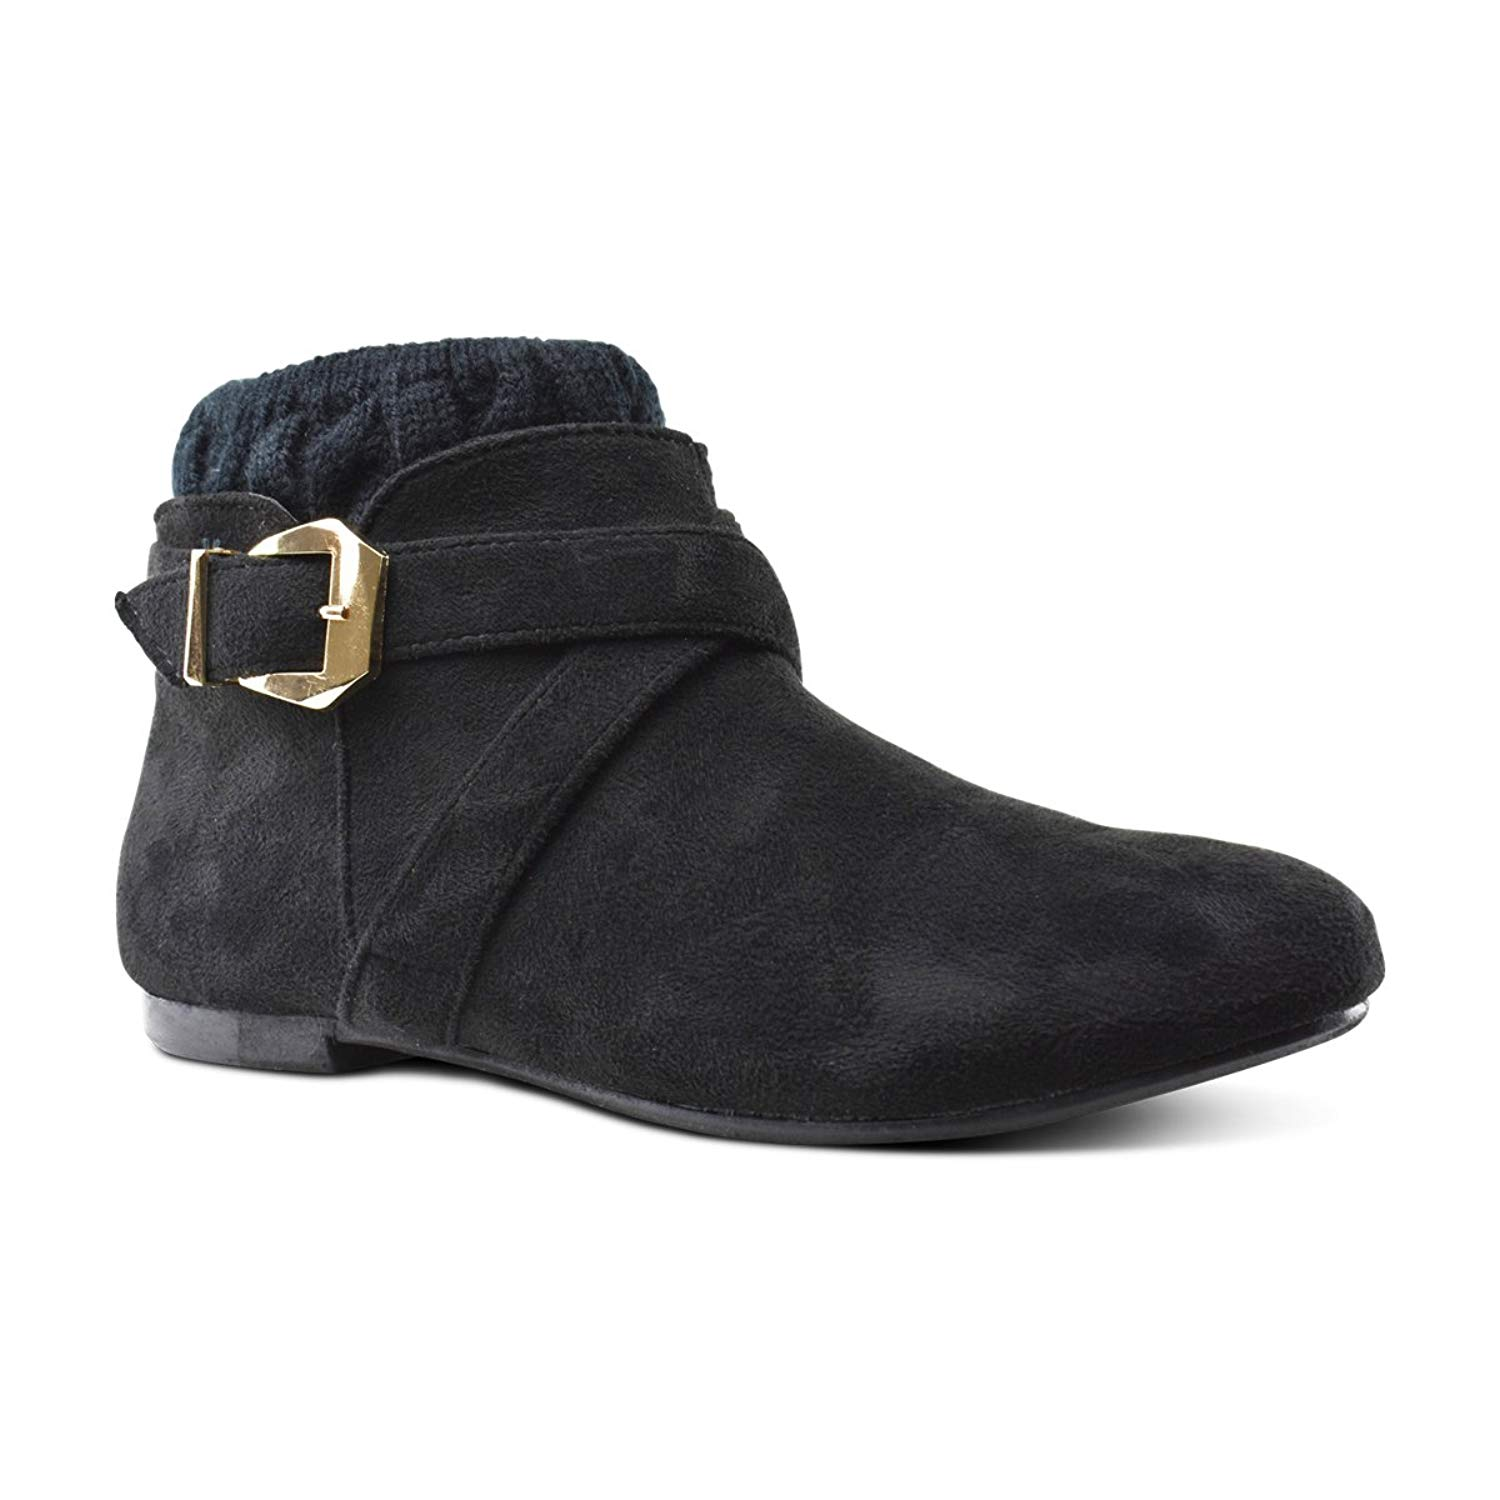 41f140fa0 Get Quotations · Premier Standard Low Heel Ankle Boot - Casual Zip Up Bootie  - Comfortable Everyday Round Toe